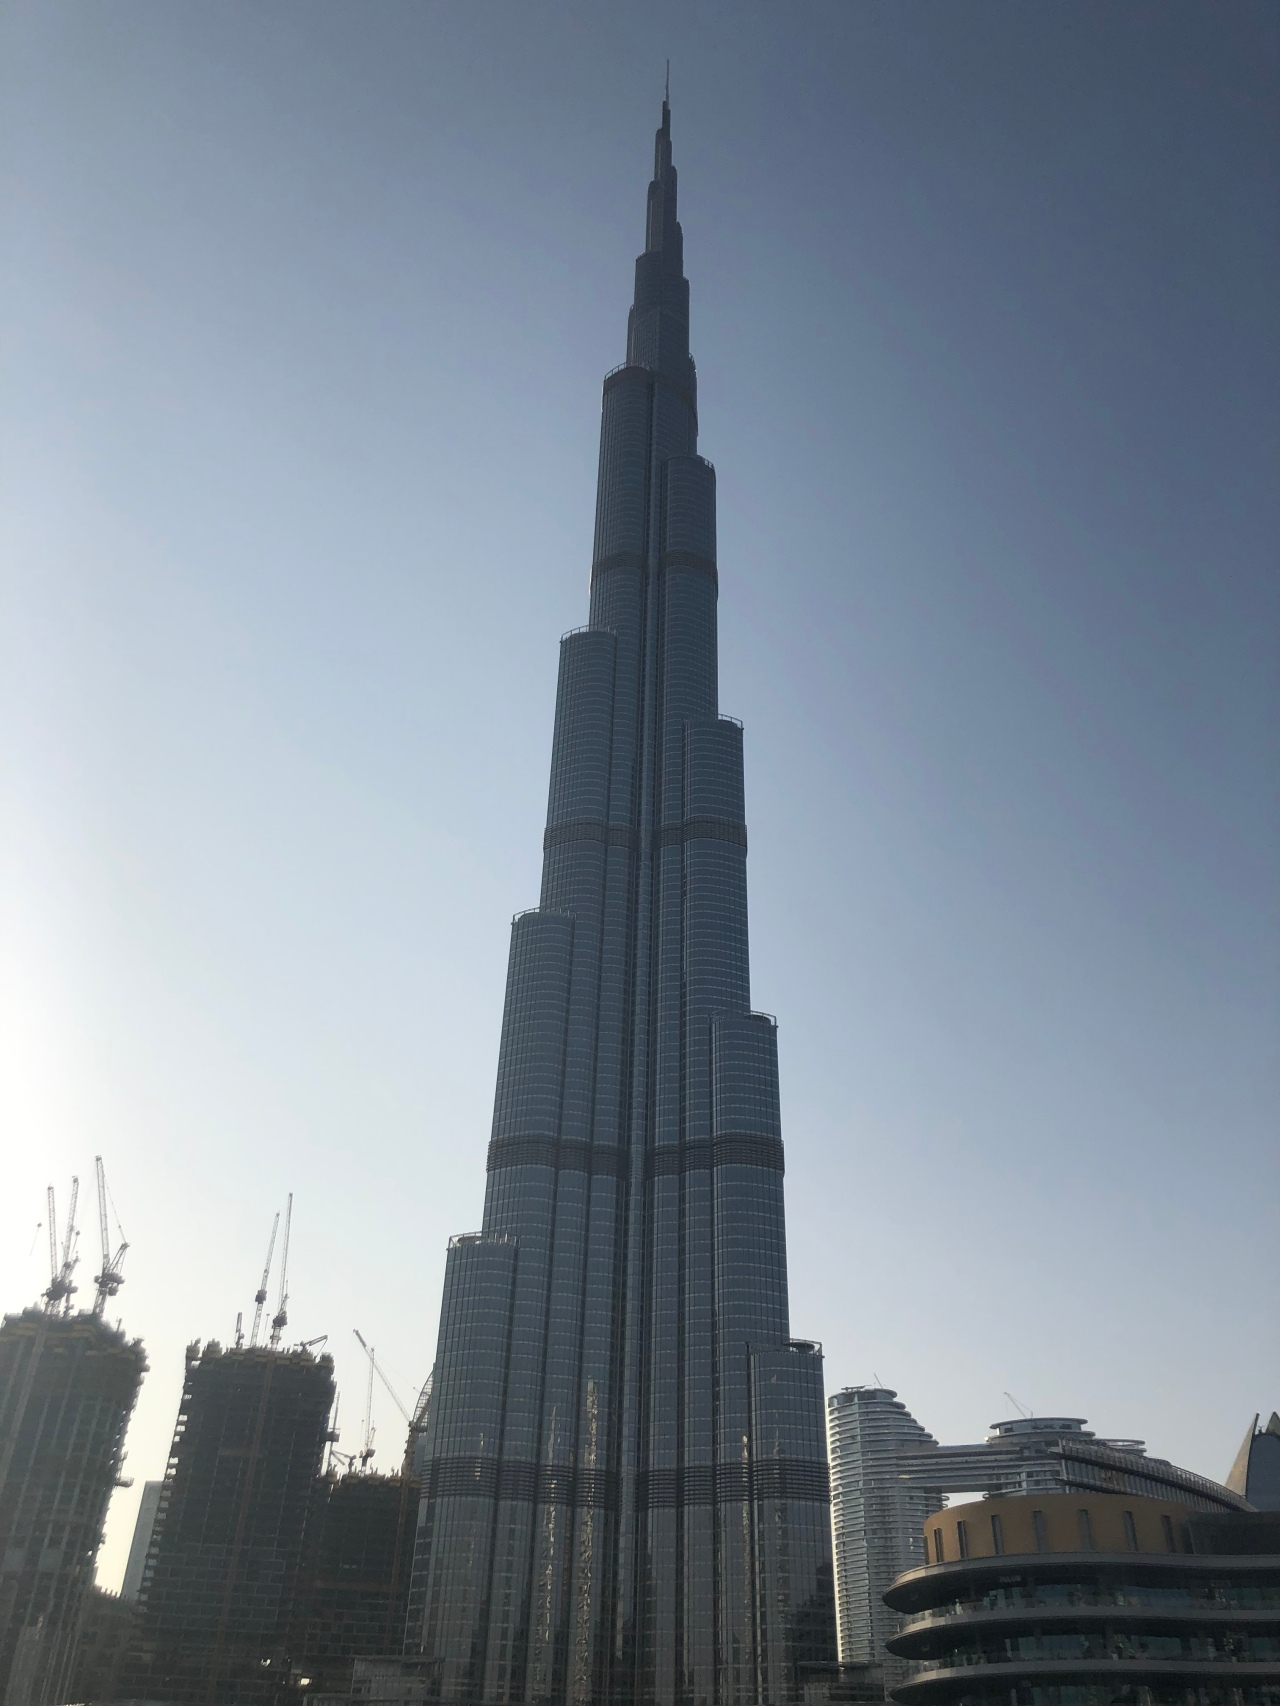 Burj Khalifa tallest building in the world